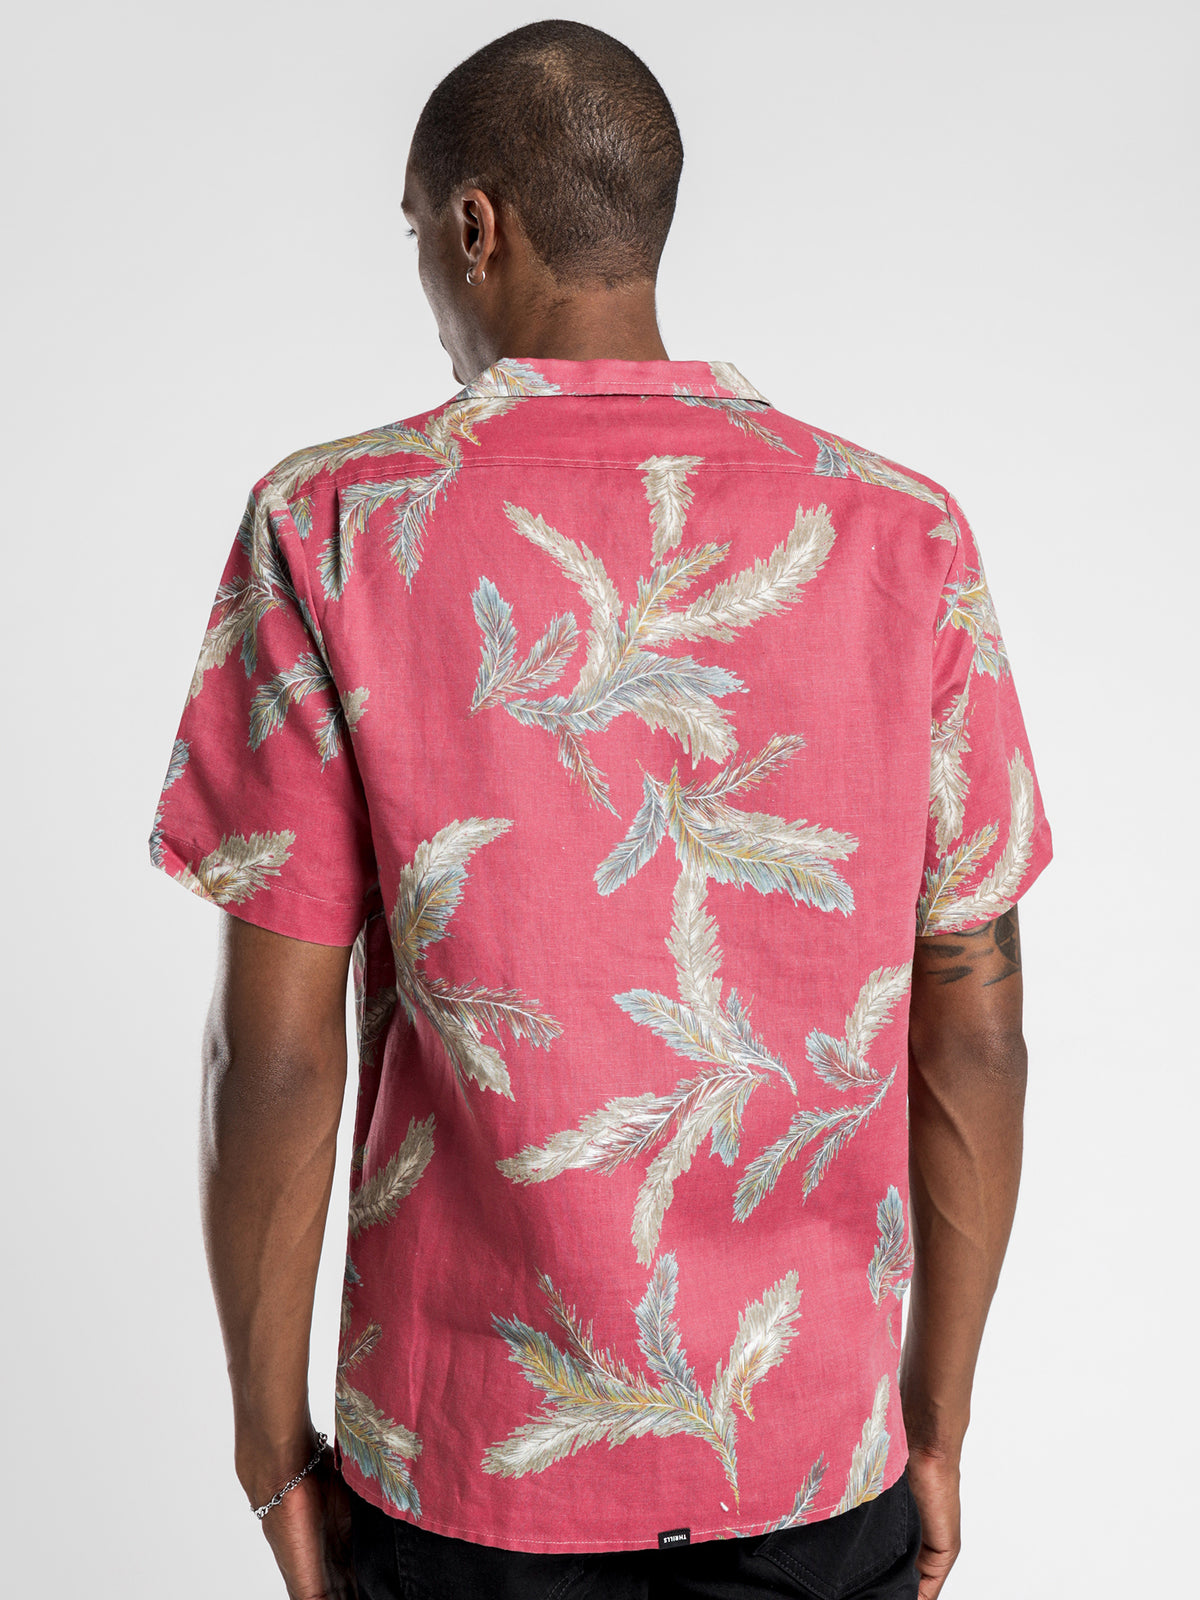 Feathered Bowling Shirt in Red Wine Palm Print